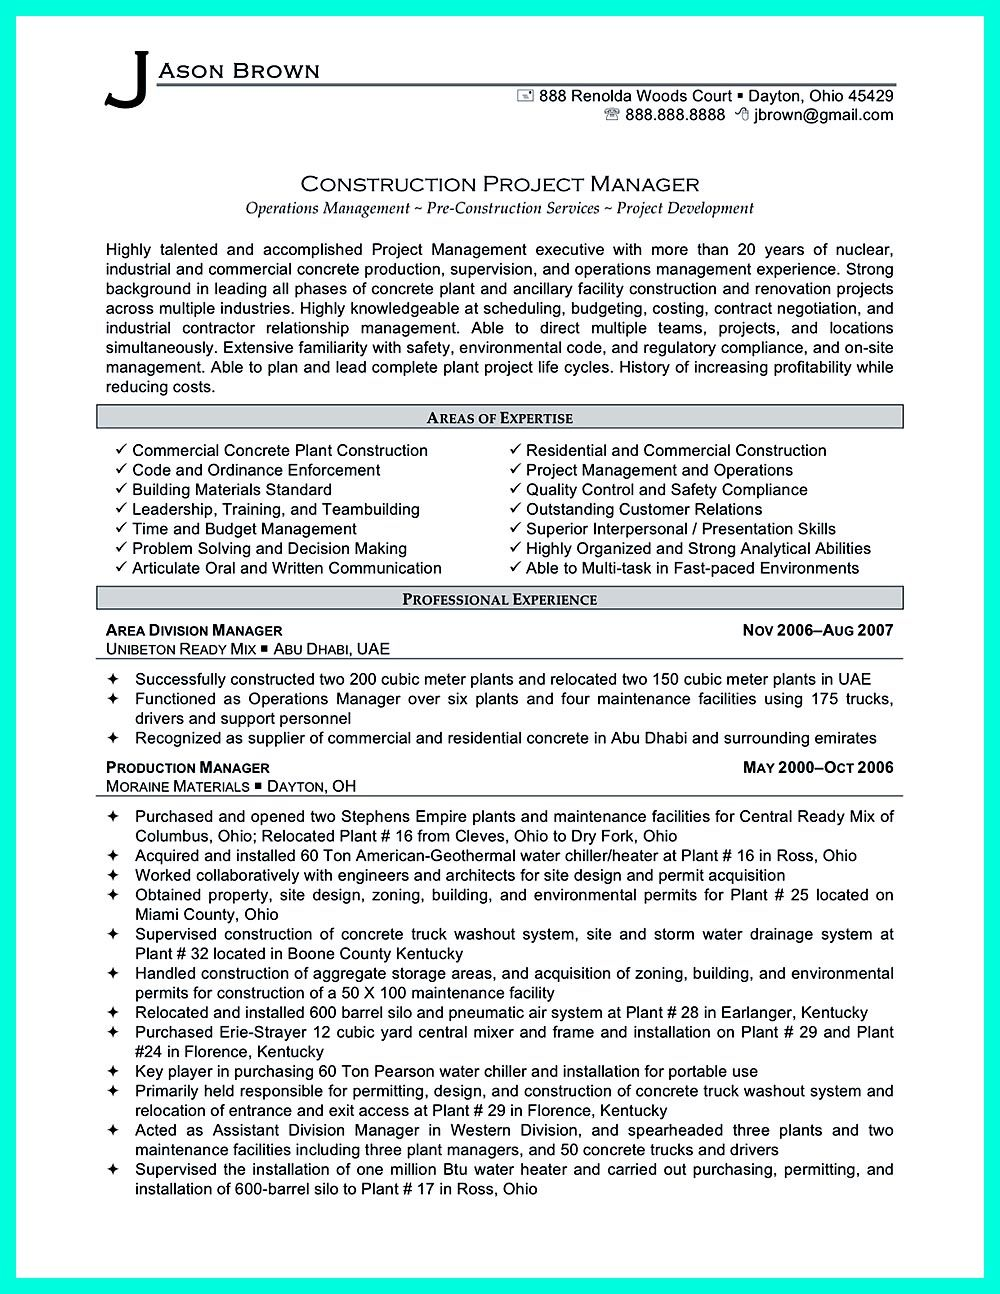 Construction Manager Resume Can Be Designed For A Professional Construction Manager Either Experienced Or Project Manager Resume Manager Resume Resume Skills